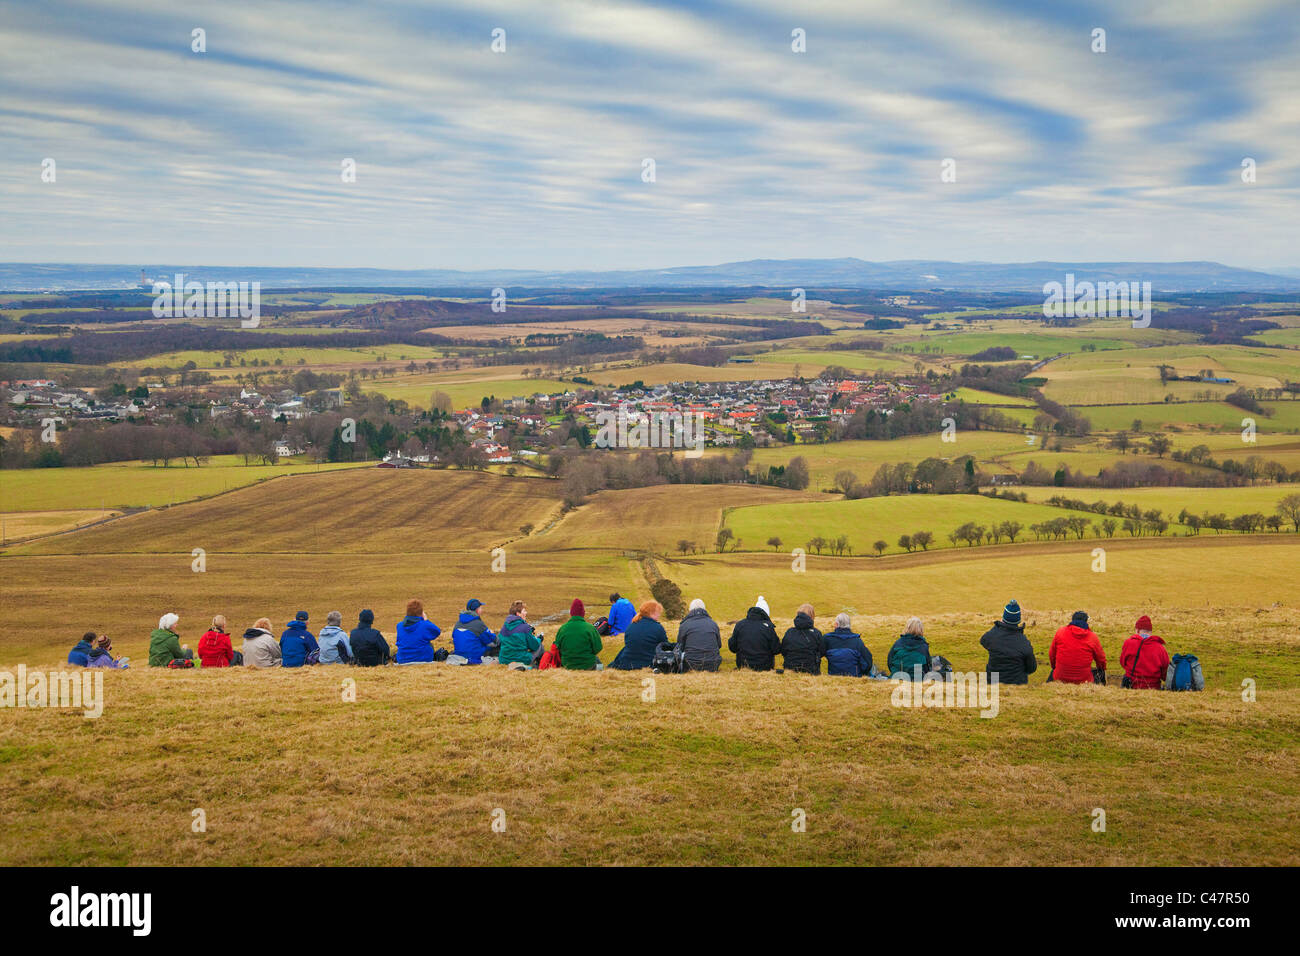 A Rambling Club on Saline Hill overlooking the village of Saline - Stock Image